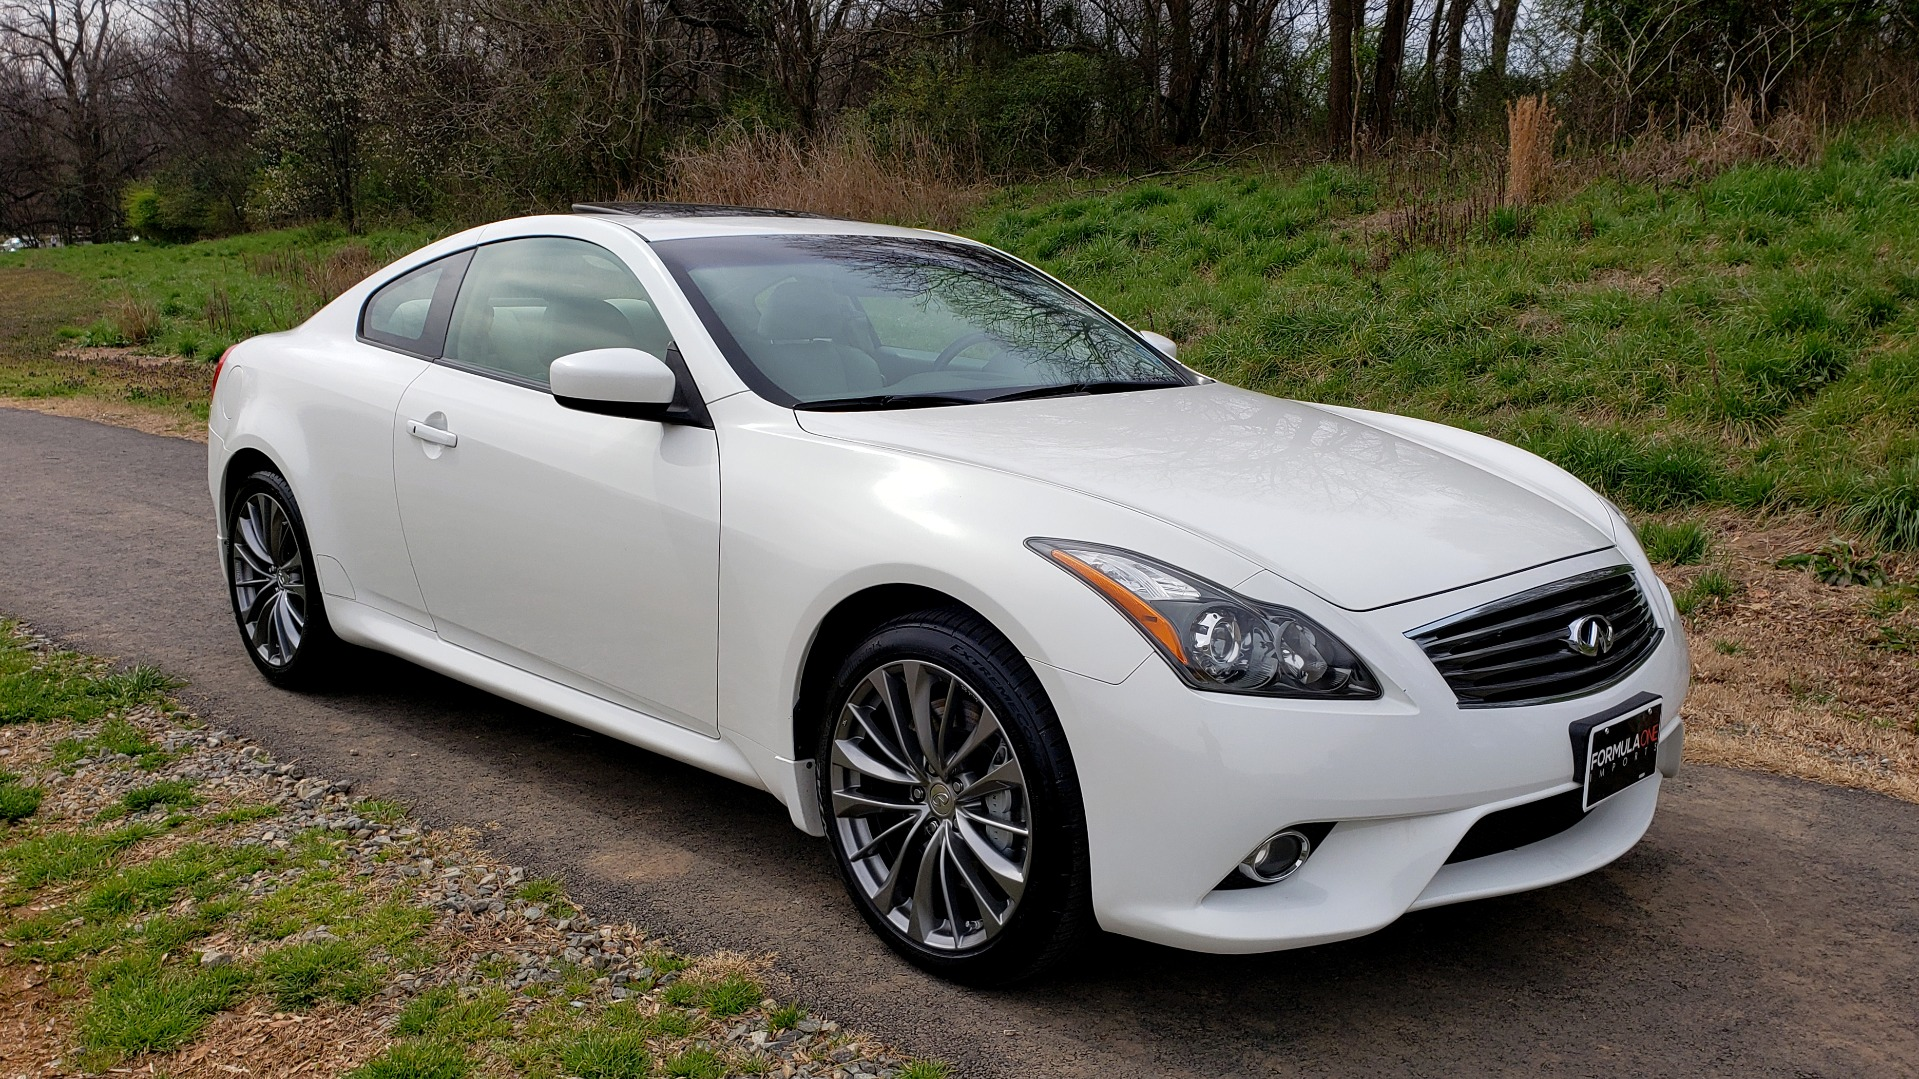 Used 2012 Infiniti G37 Coupe X AWD PREMIUM SPORT PKG / NAV / SUNROOF / REARVIEW for sale Sold at Formula Imports in Charlotte NC 28227 4